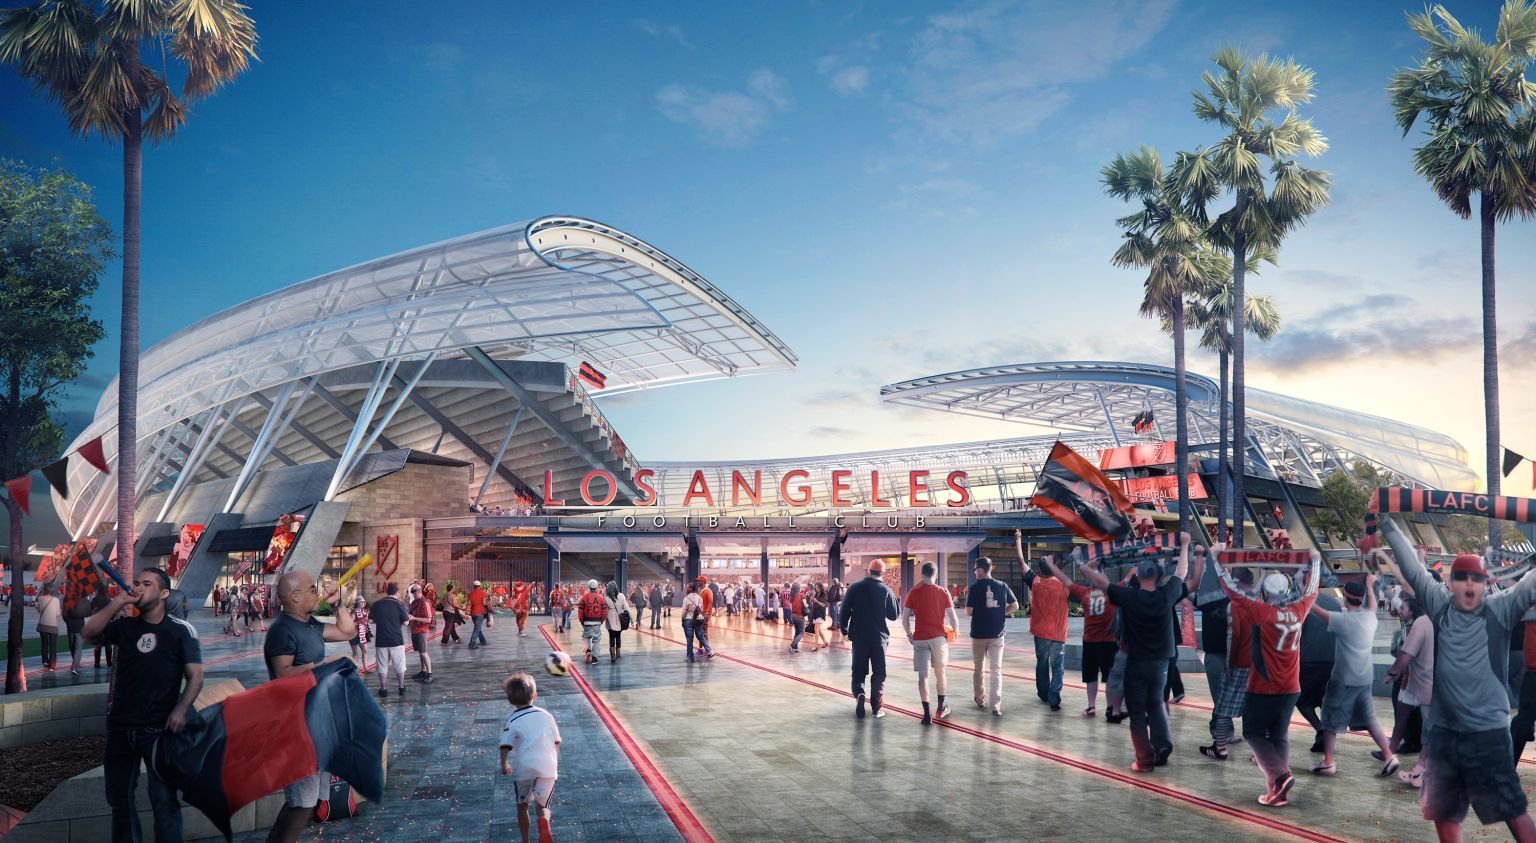 Photos Lafc Unveil Plans To Build 250 Million Stadium Near Downtown Los Angeles Prosoccertalk Nbc Sports Los Angeles Football Club Architectural Competition Stadium